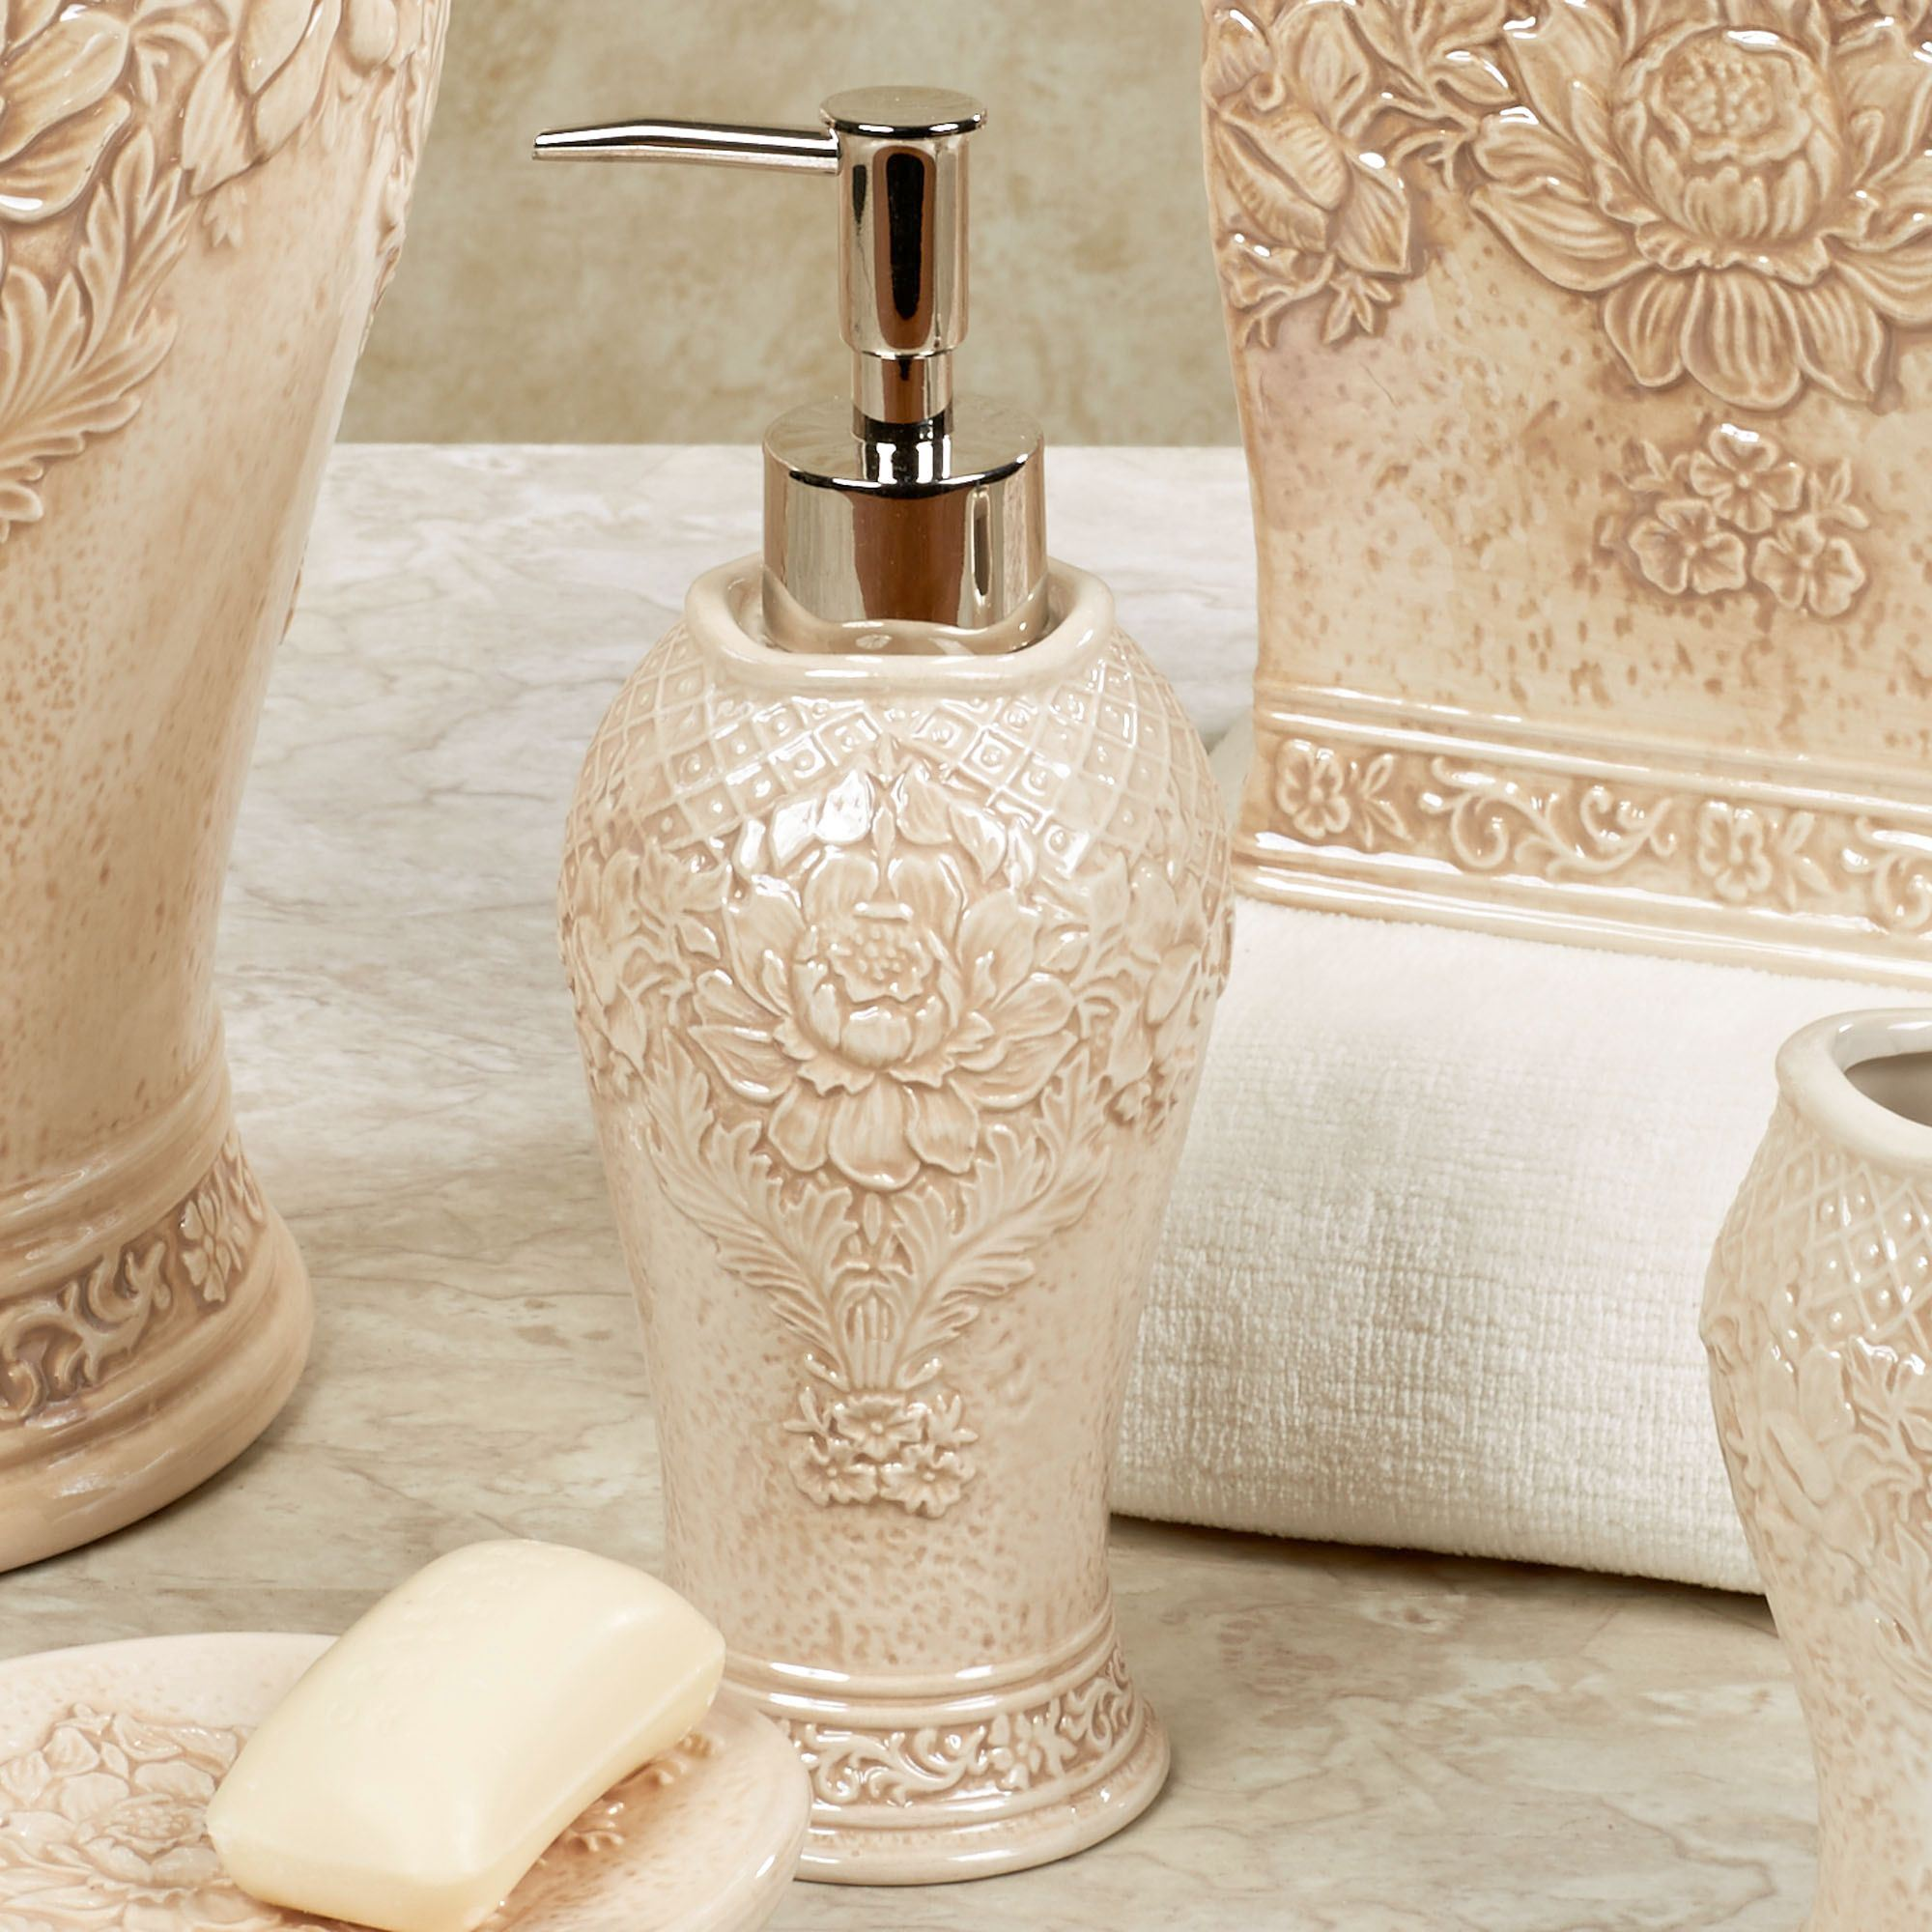 Bianca Ceramic Floral Bath Accessories By J Queen New York